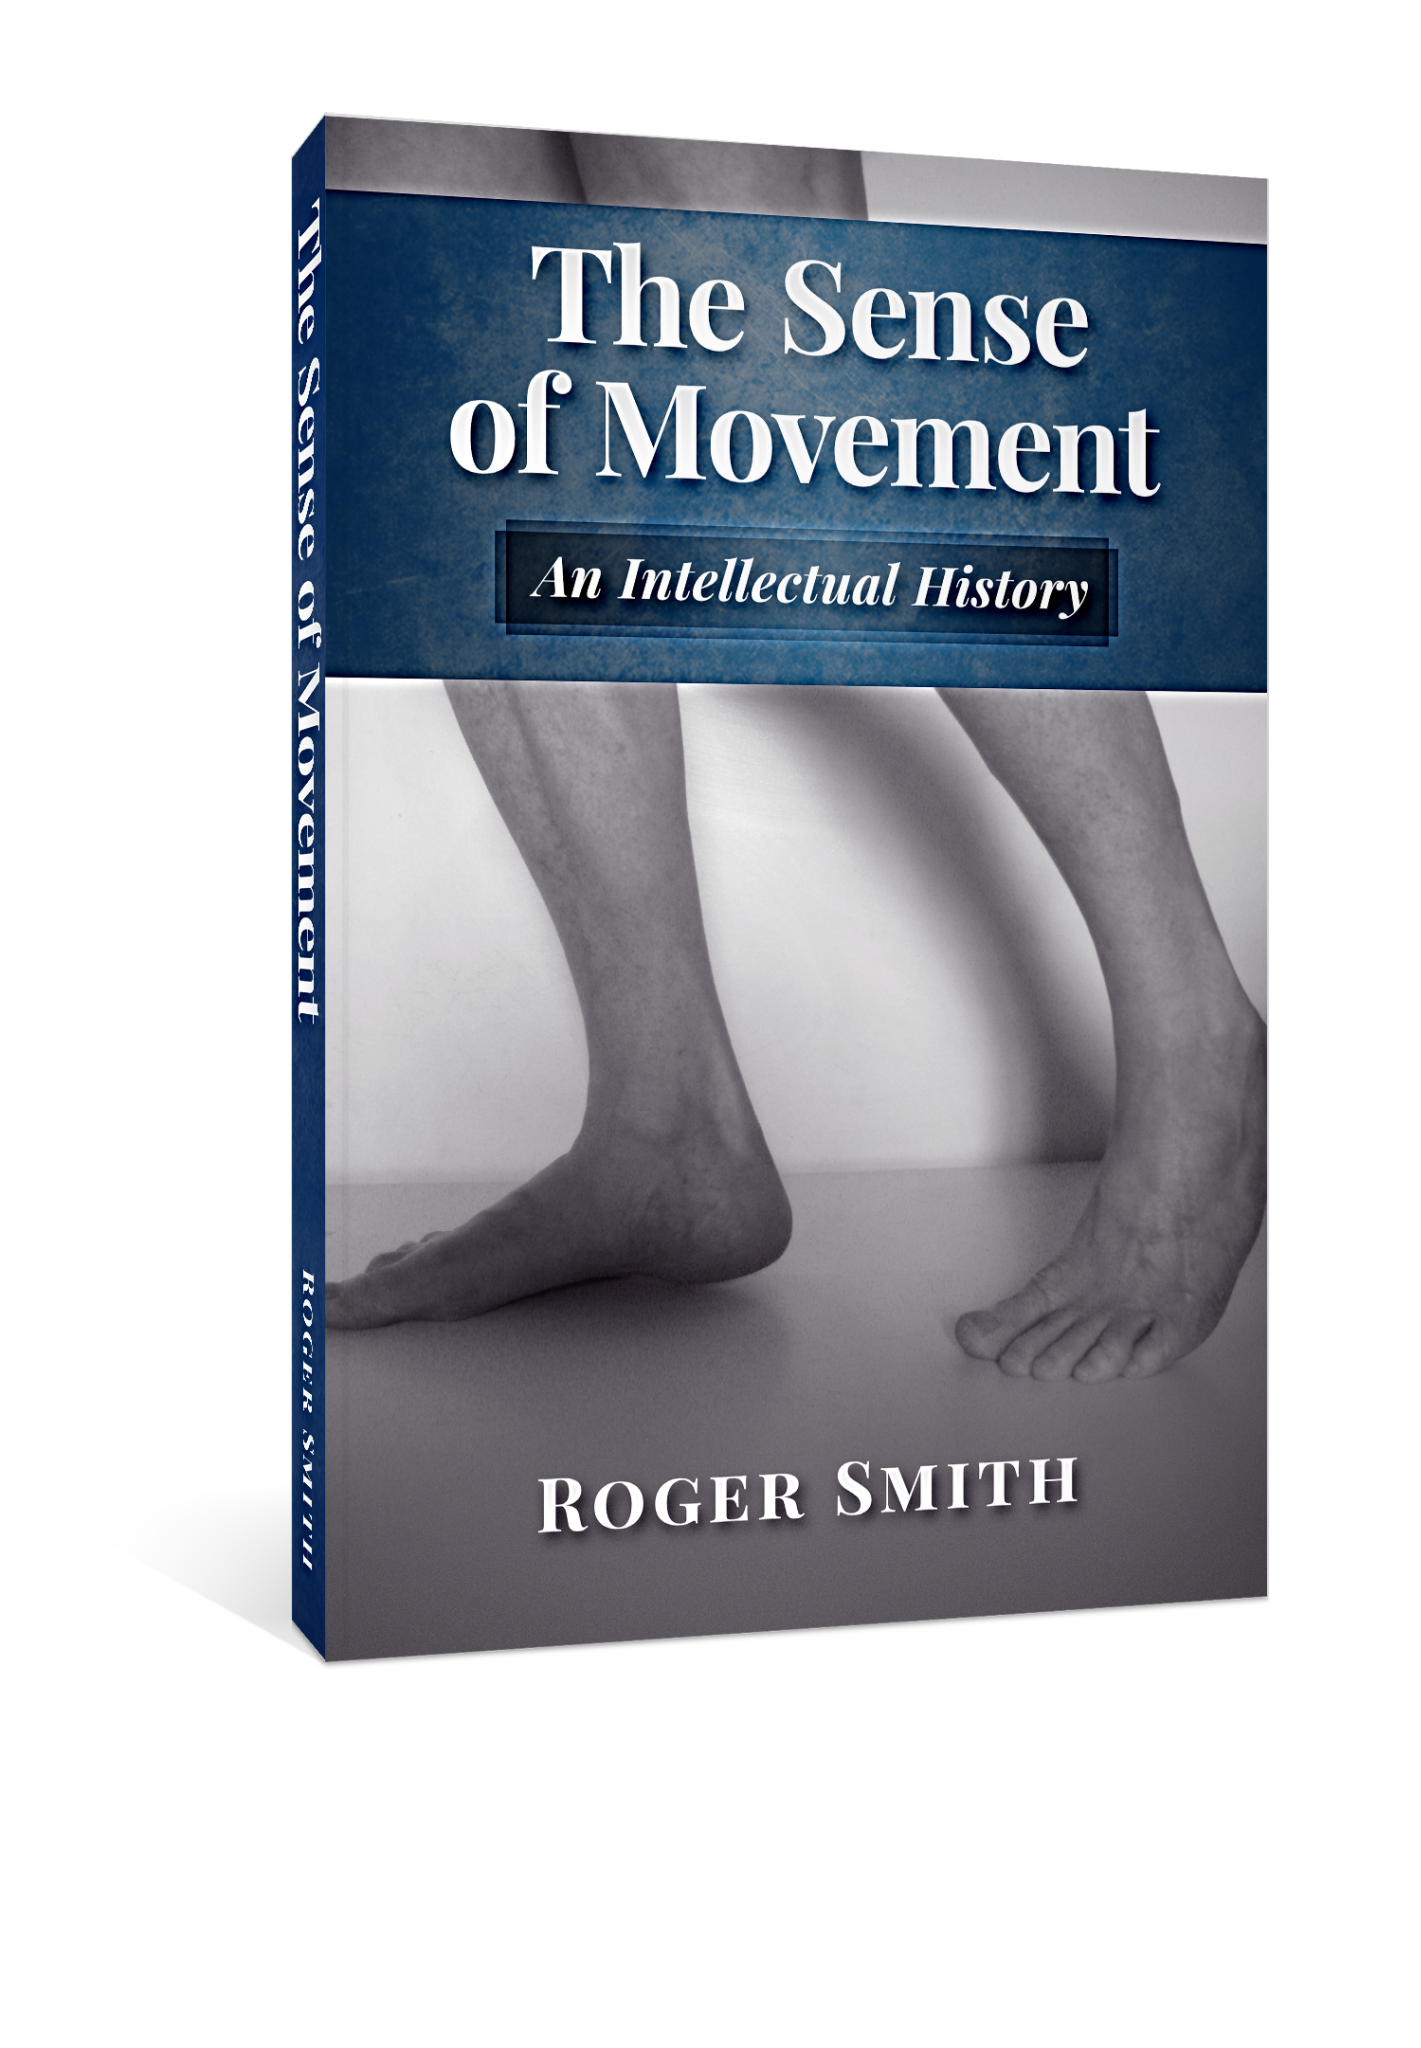 The Sense of Movement An Intellectual History by Roger Smith